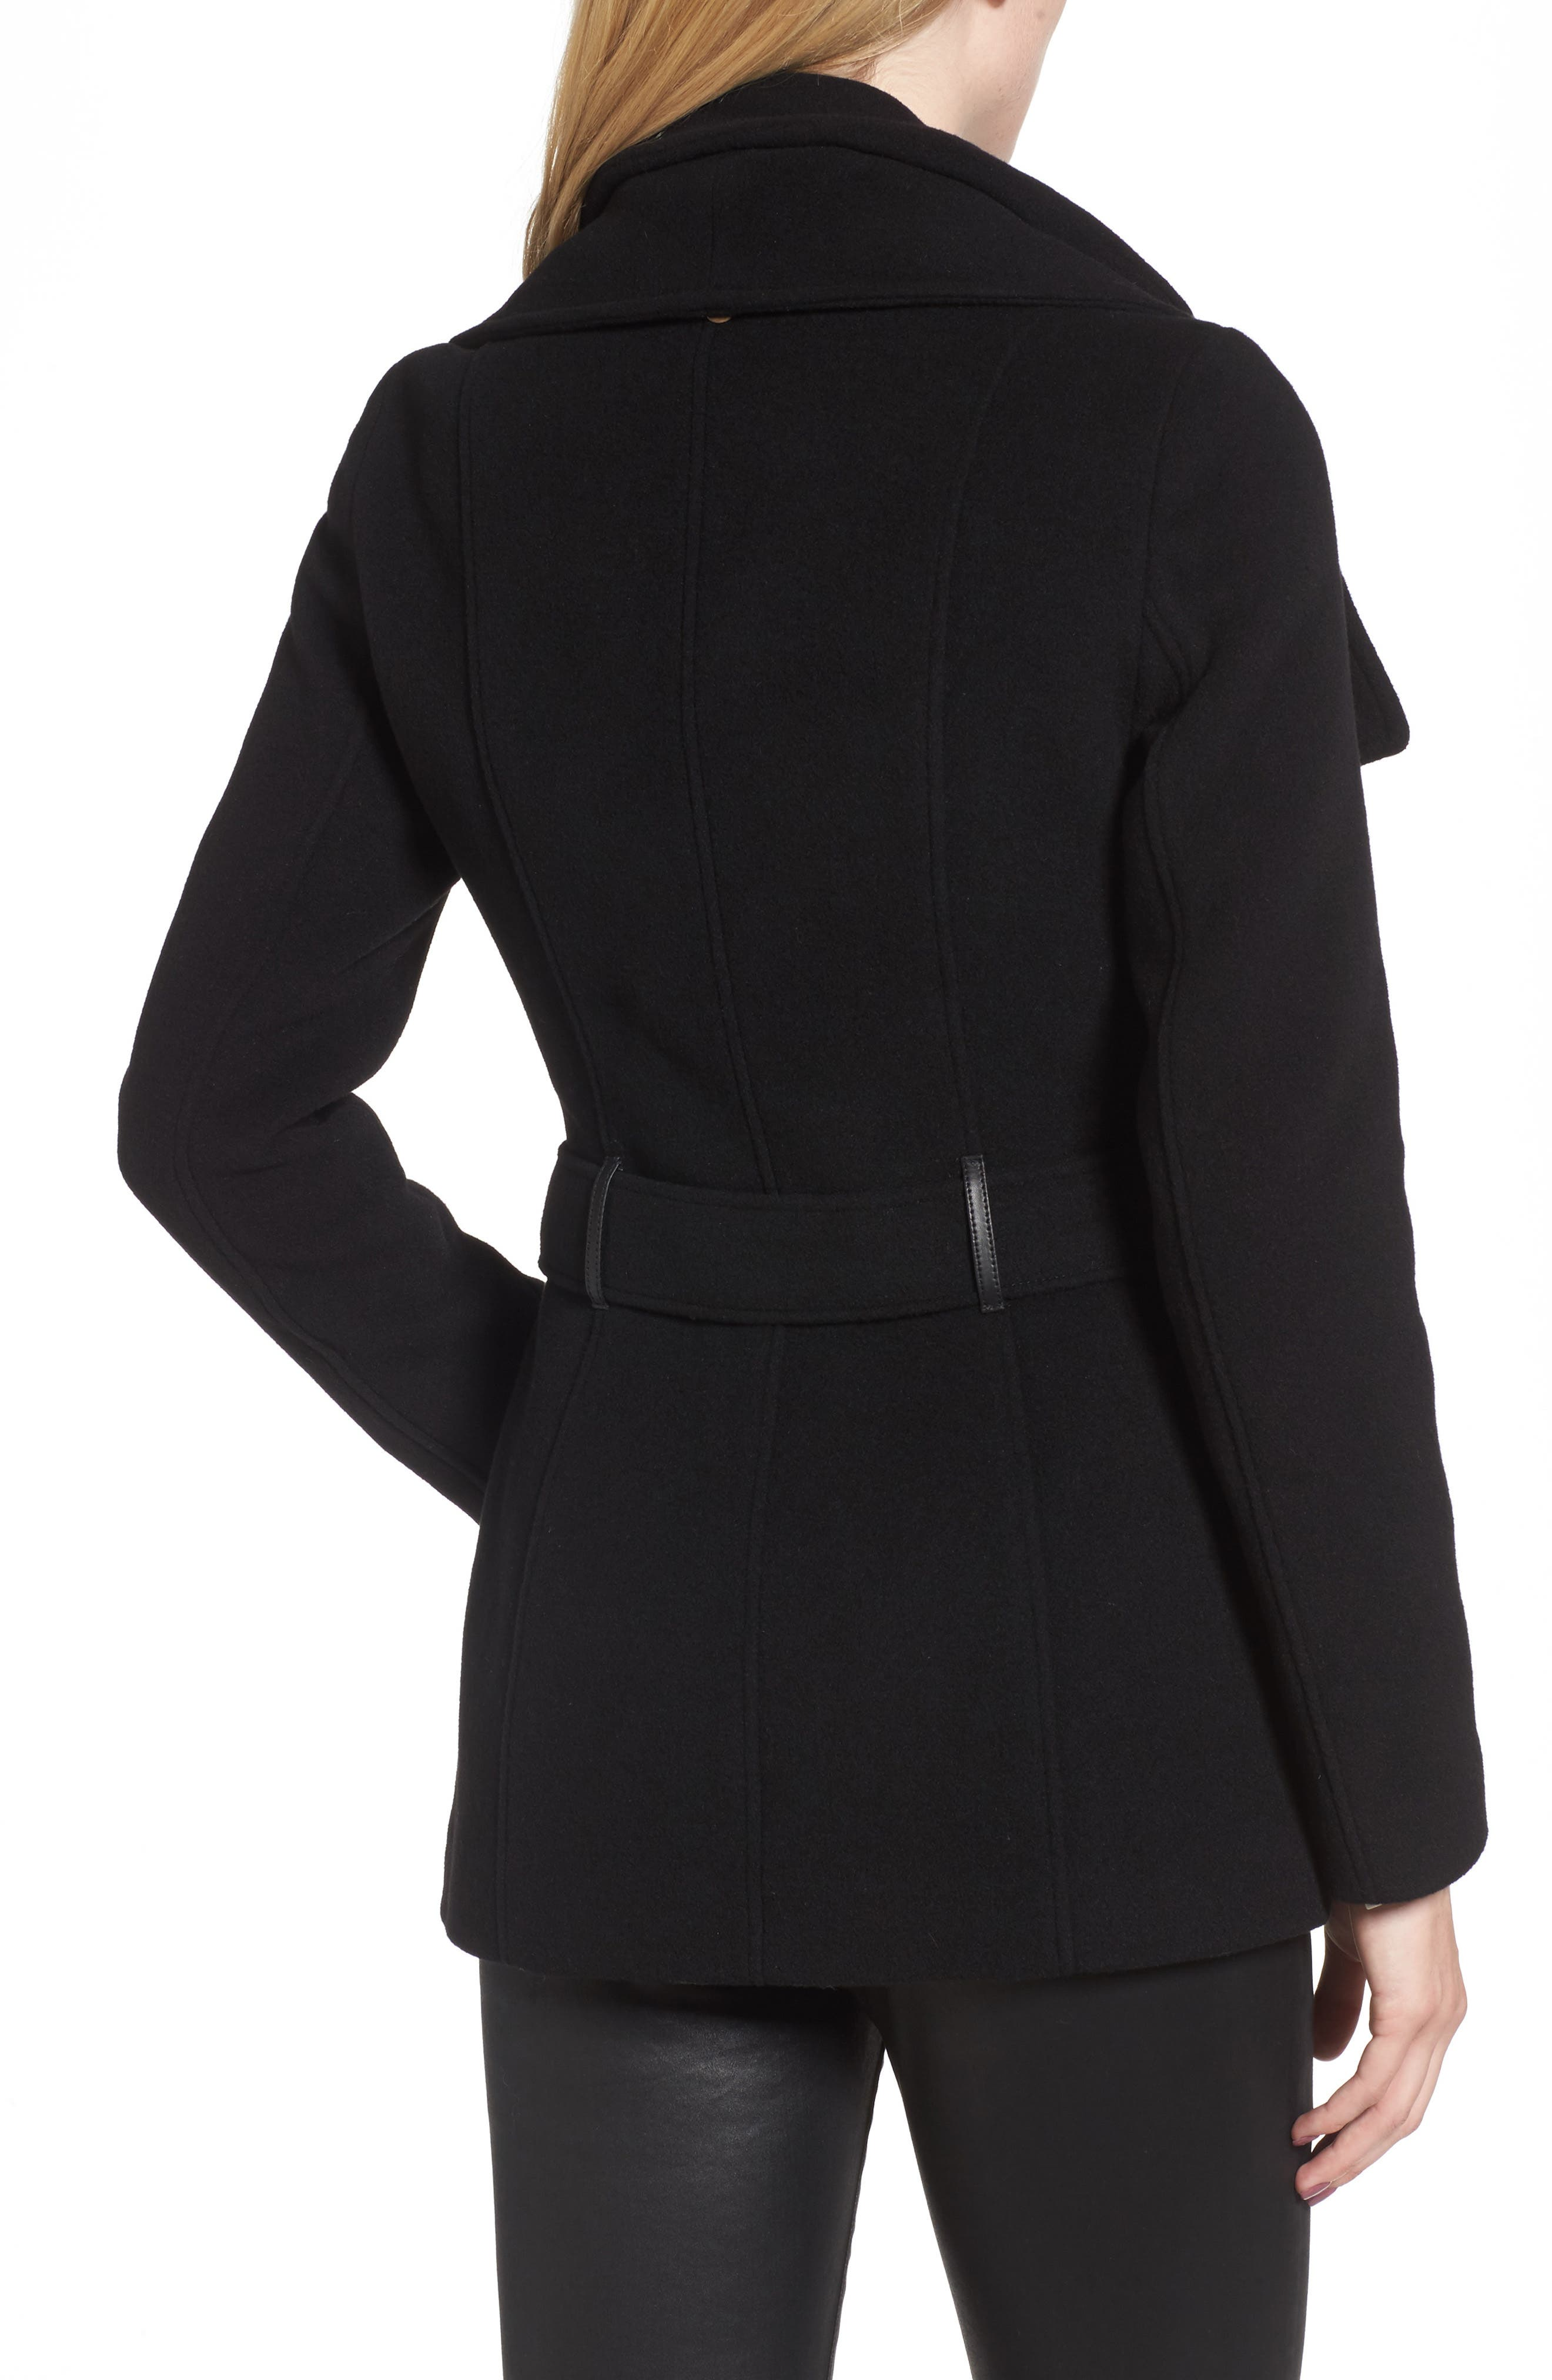 Norissa Double-Breasted Wool Blend Peacoat,                             Alternate thumbnail 2, color,                             001